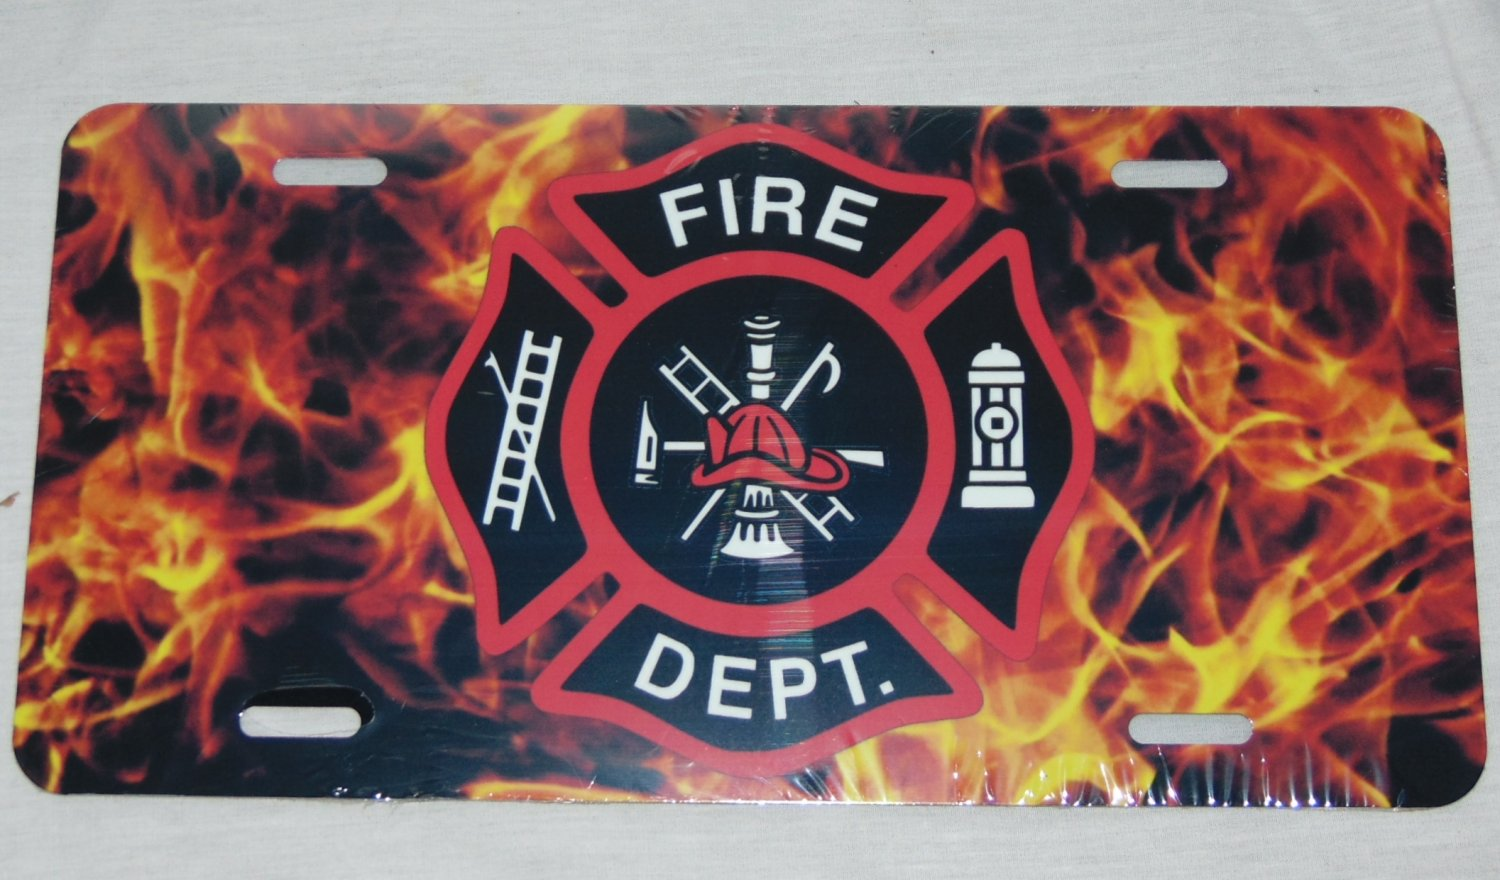 FIREMAN FIREFIGHTER FLAME LICENSE PLATE 6 X 12 INCHES NEW ALUMINUM